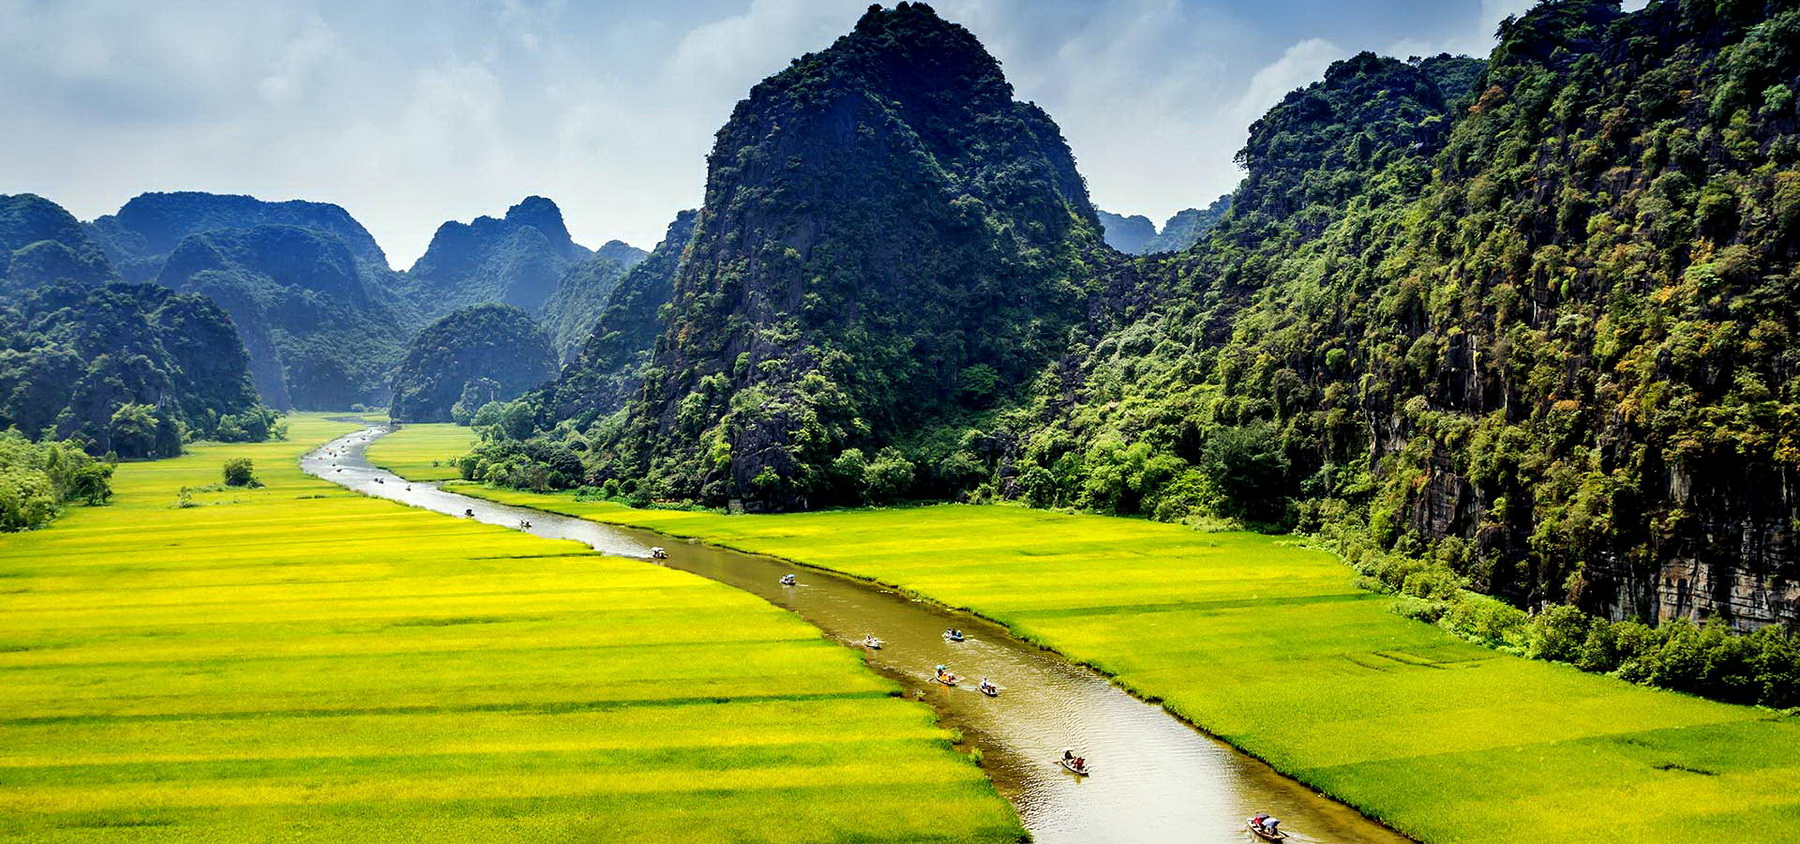 Vietnam travel - the timeless charm